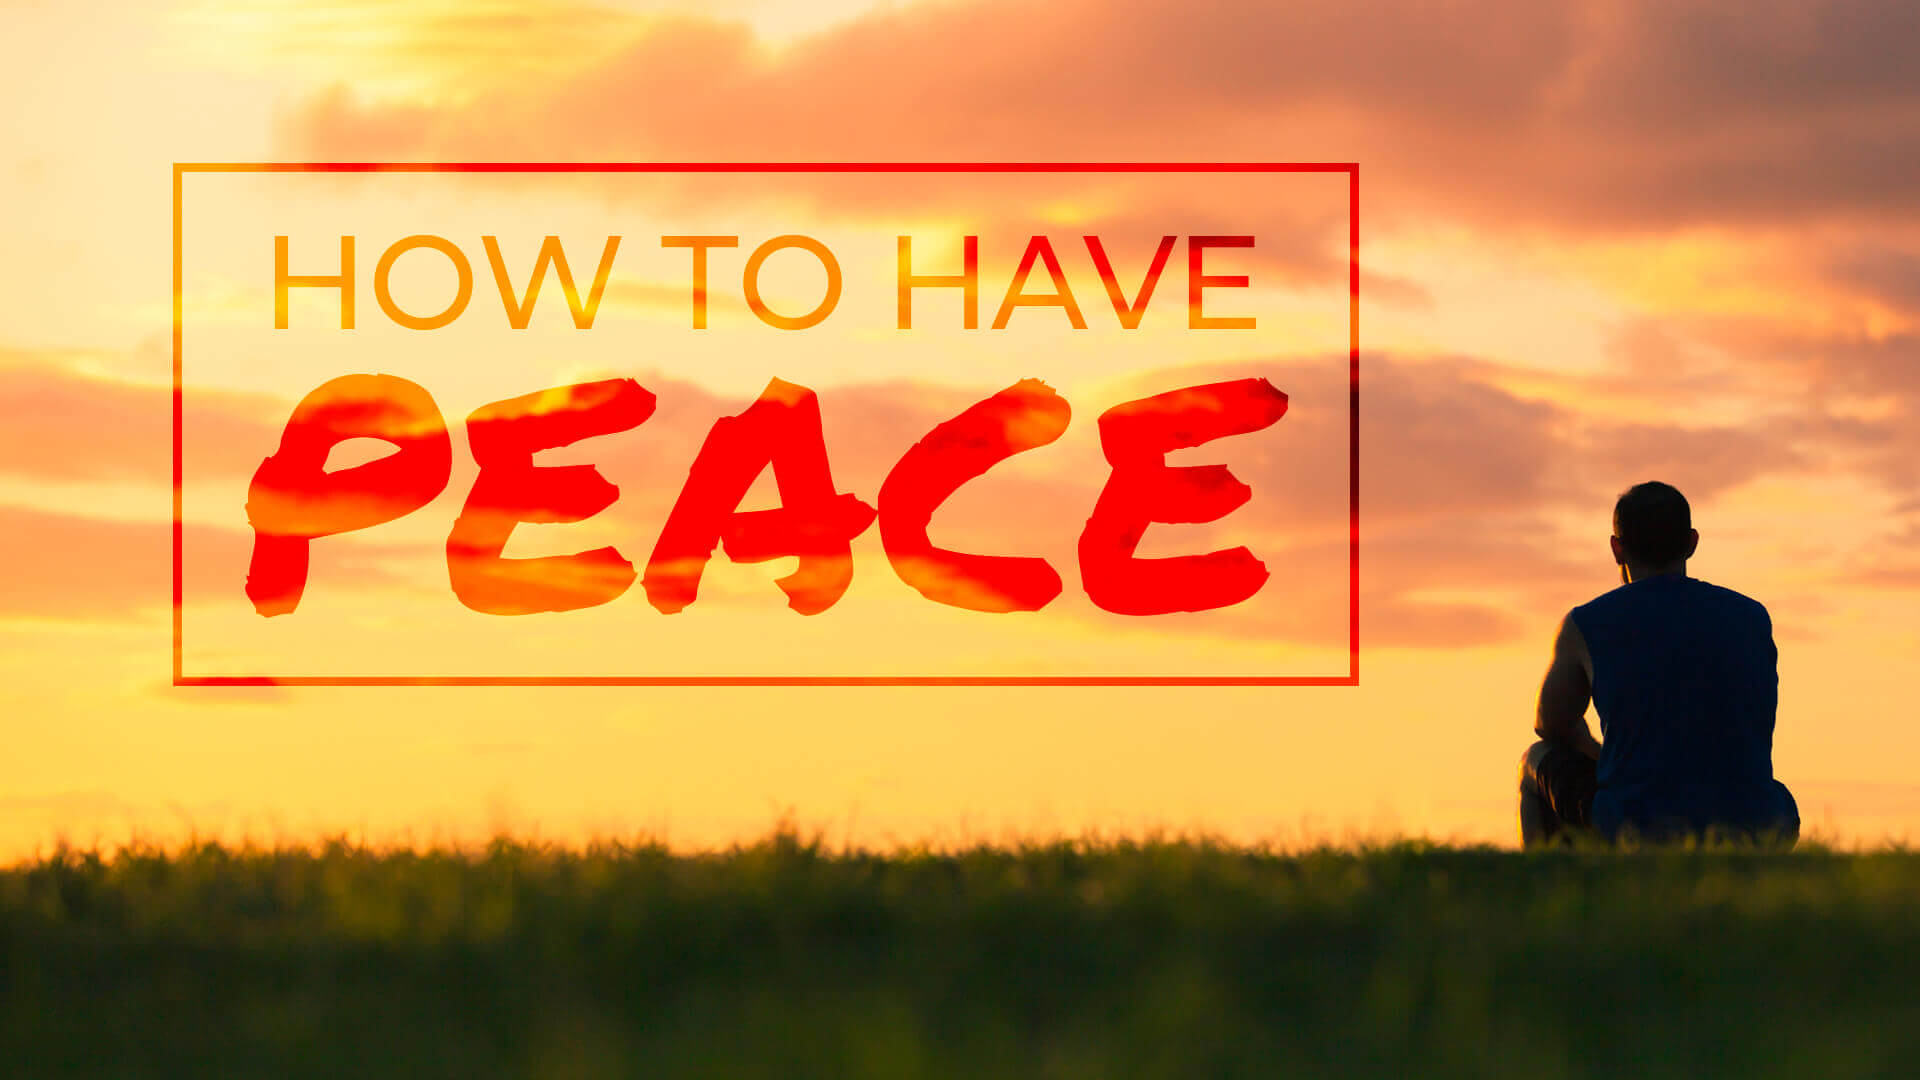 Abundant Life - How to Have Peace